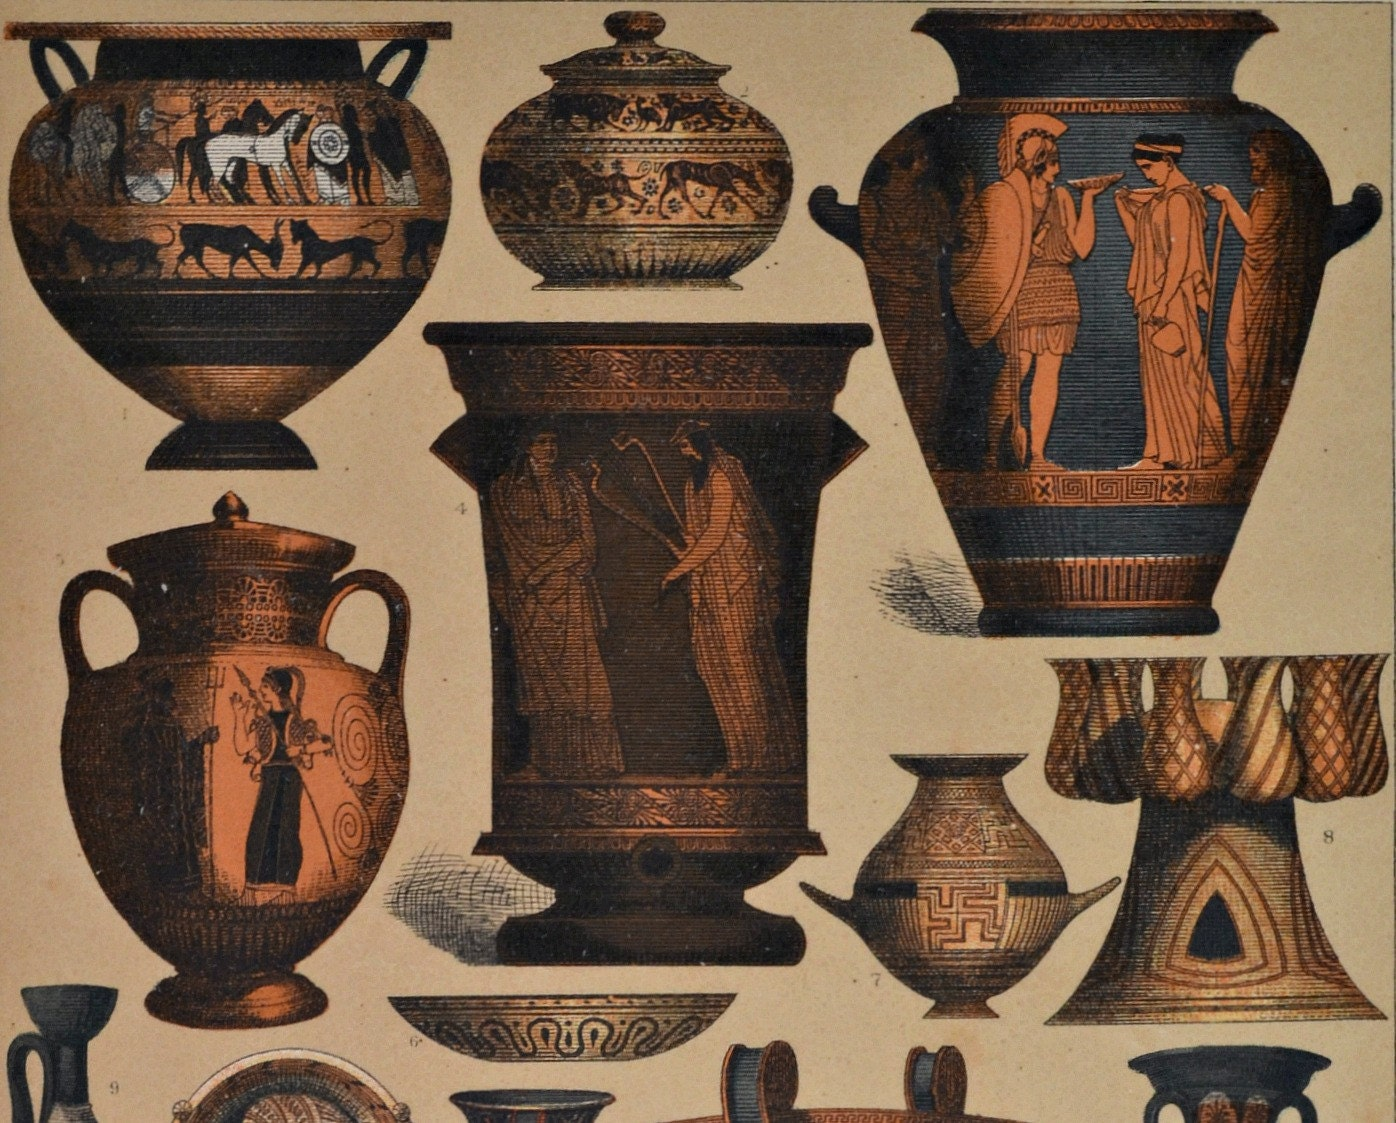 Greek ceramic objects. Ancient history. Antique print1894.